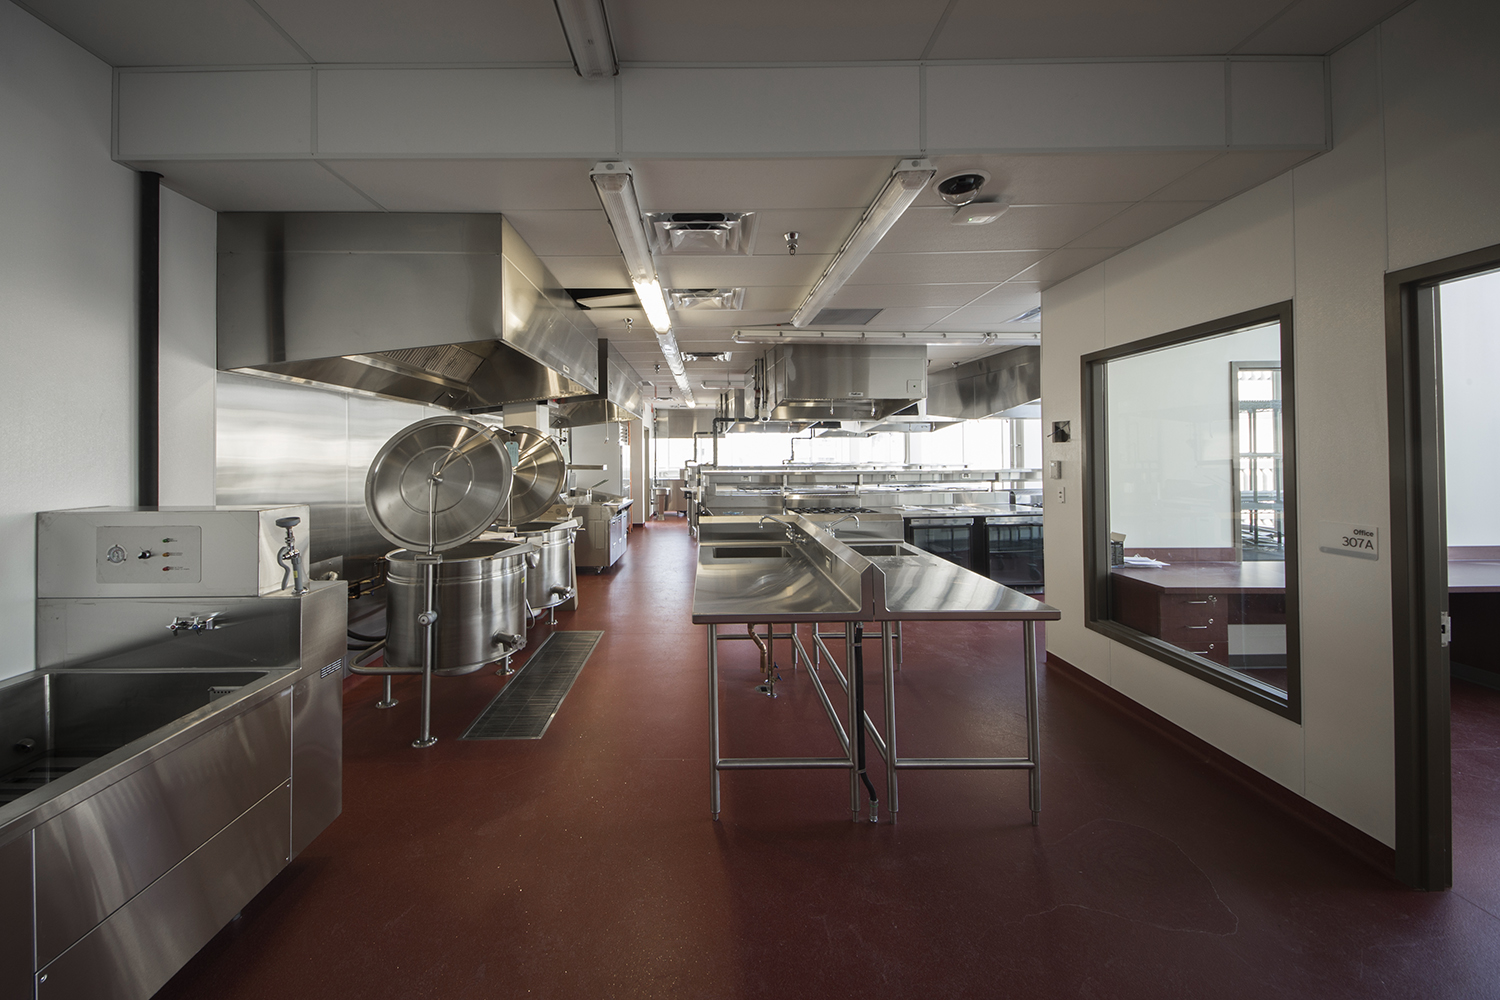 Red River College Culinary Arts & Student Housing, interior photo of classroom / Photo: Bryan Scott